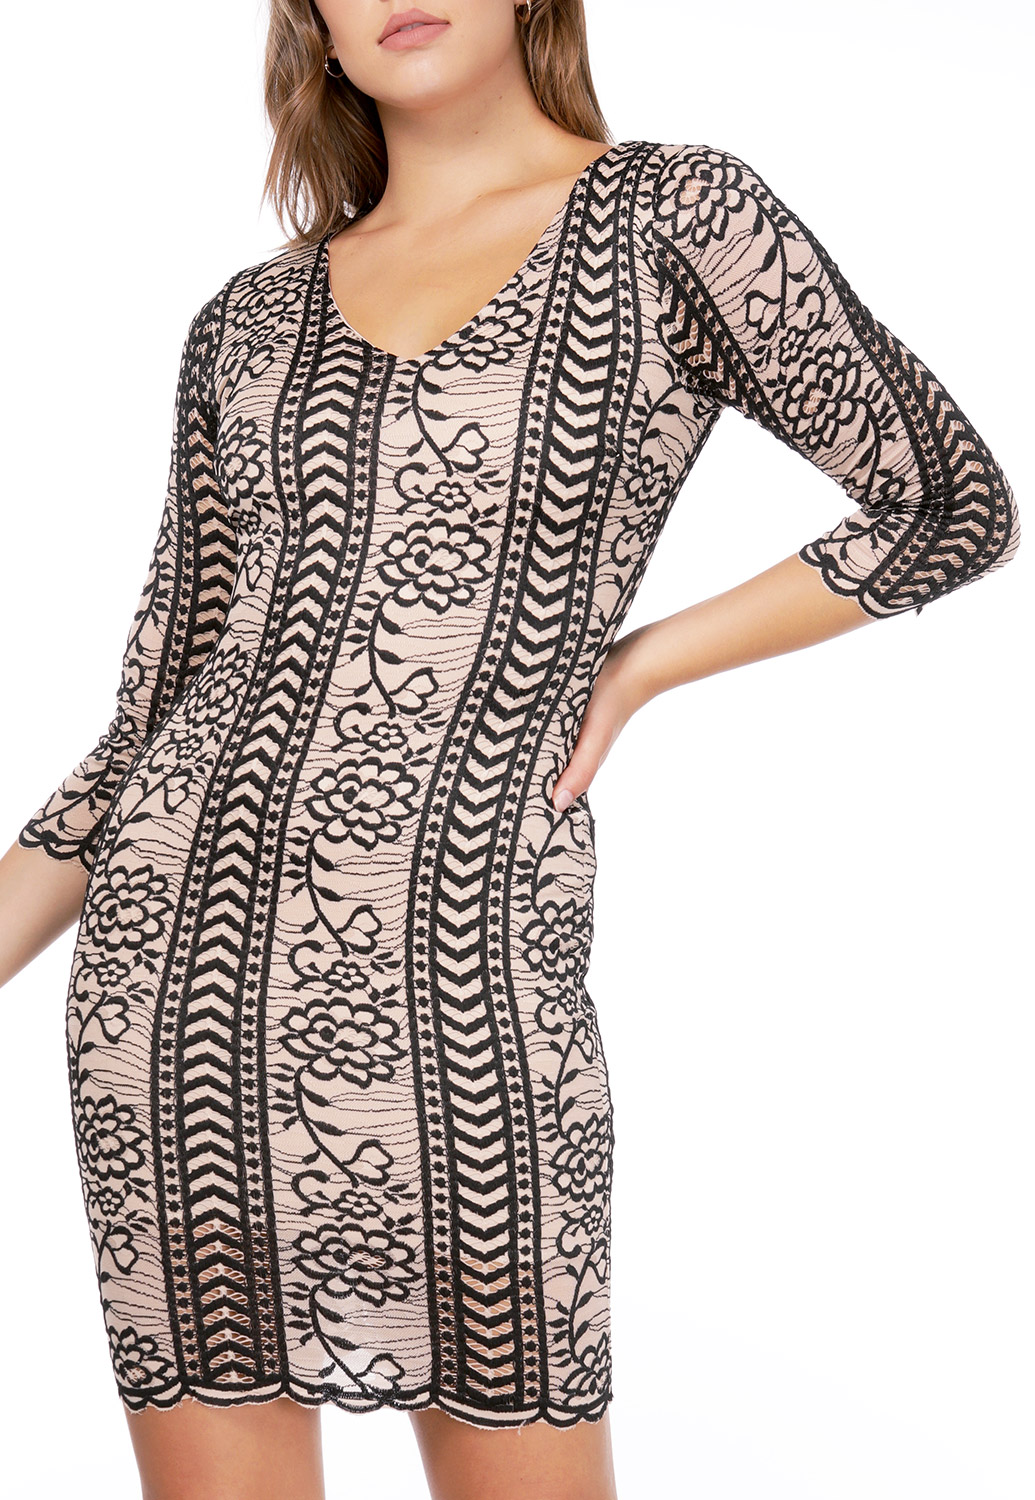 Floral Lace Panel Bodycon Dress